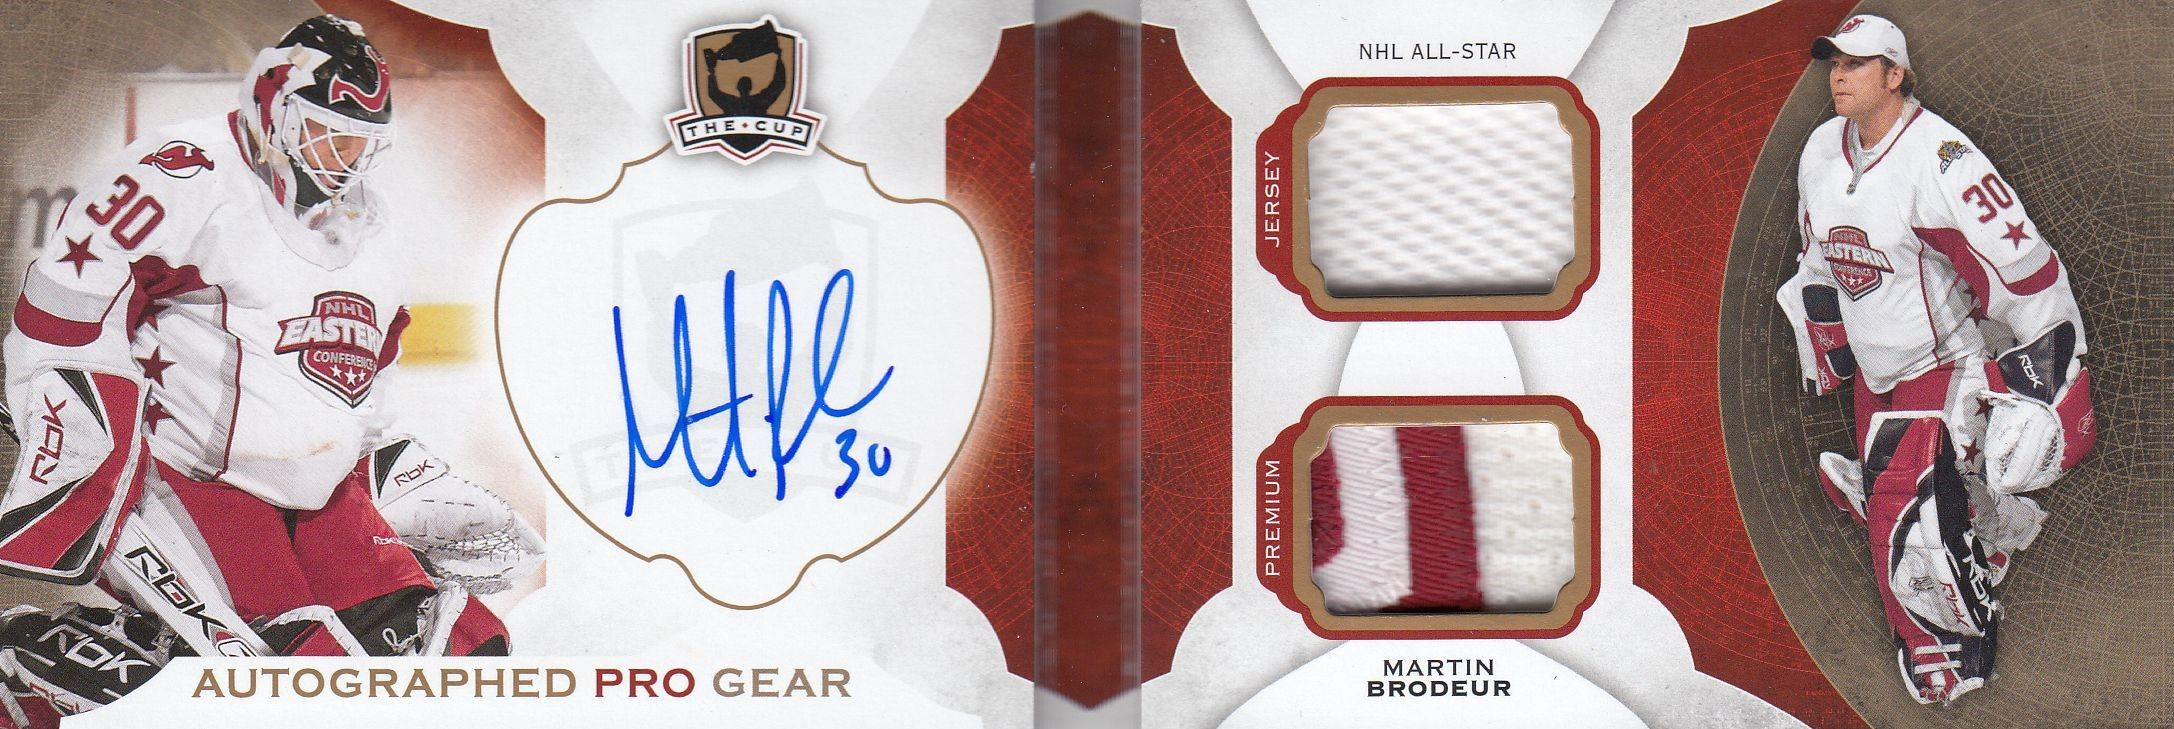 AUTO jersey patch karta MARTIN BRODEUR 16-17 UD The Cup Pro Gear /12